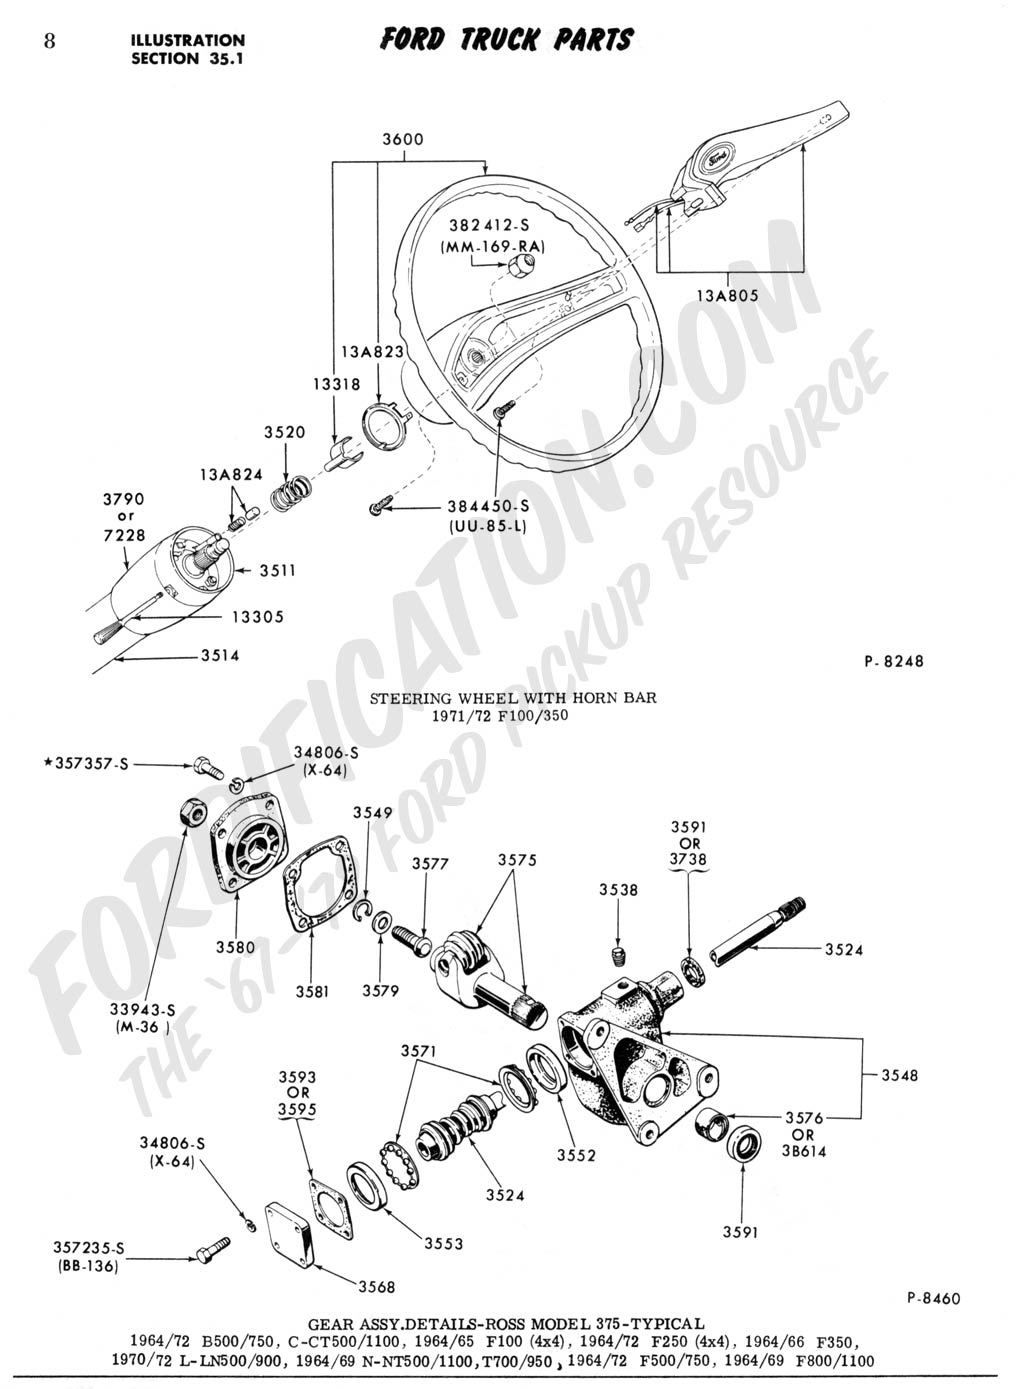 pwrsteering box_4WD ford truck technical drawings and schematics section c 1969 ford f100 steering column wiring diagram at gsmportal.co